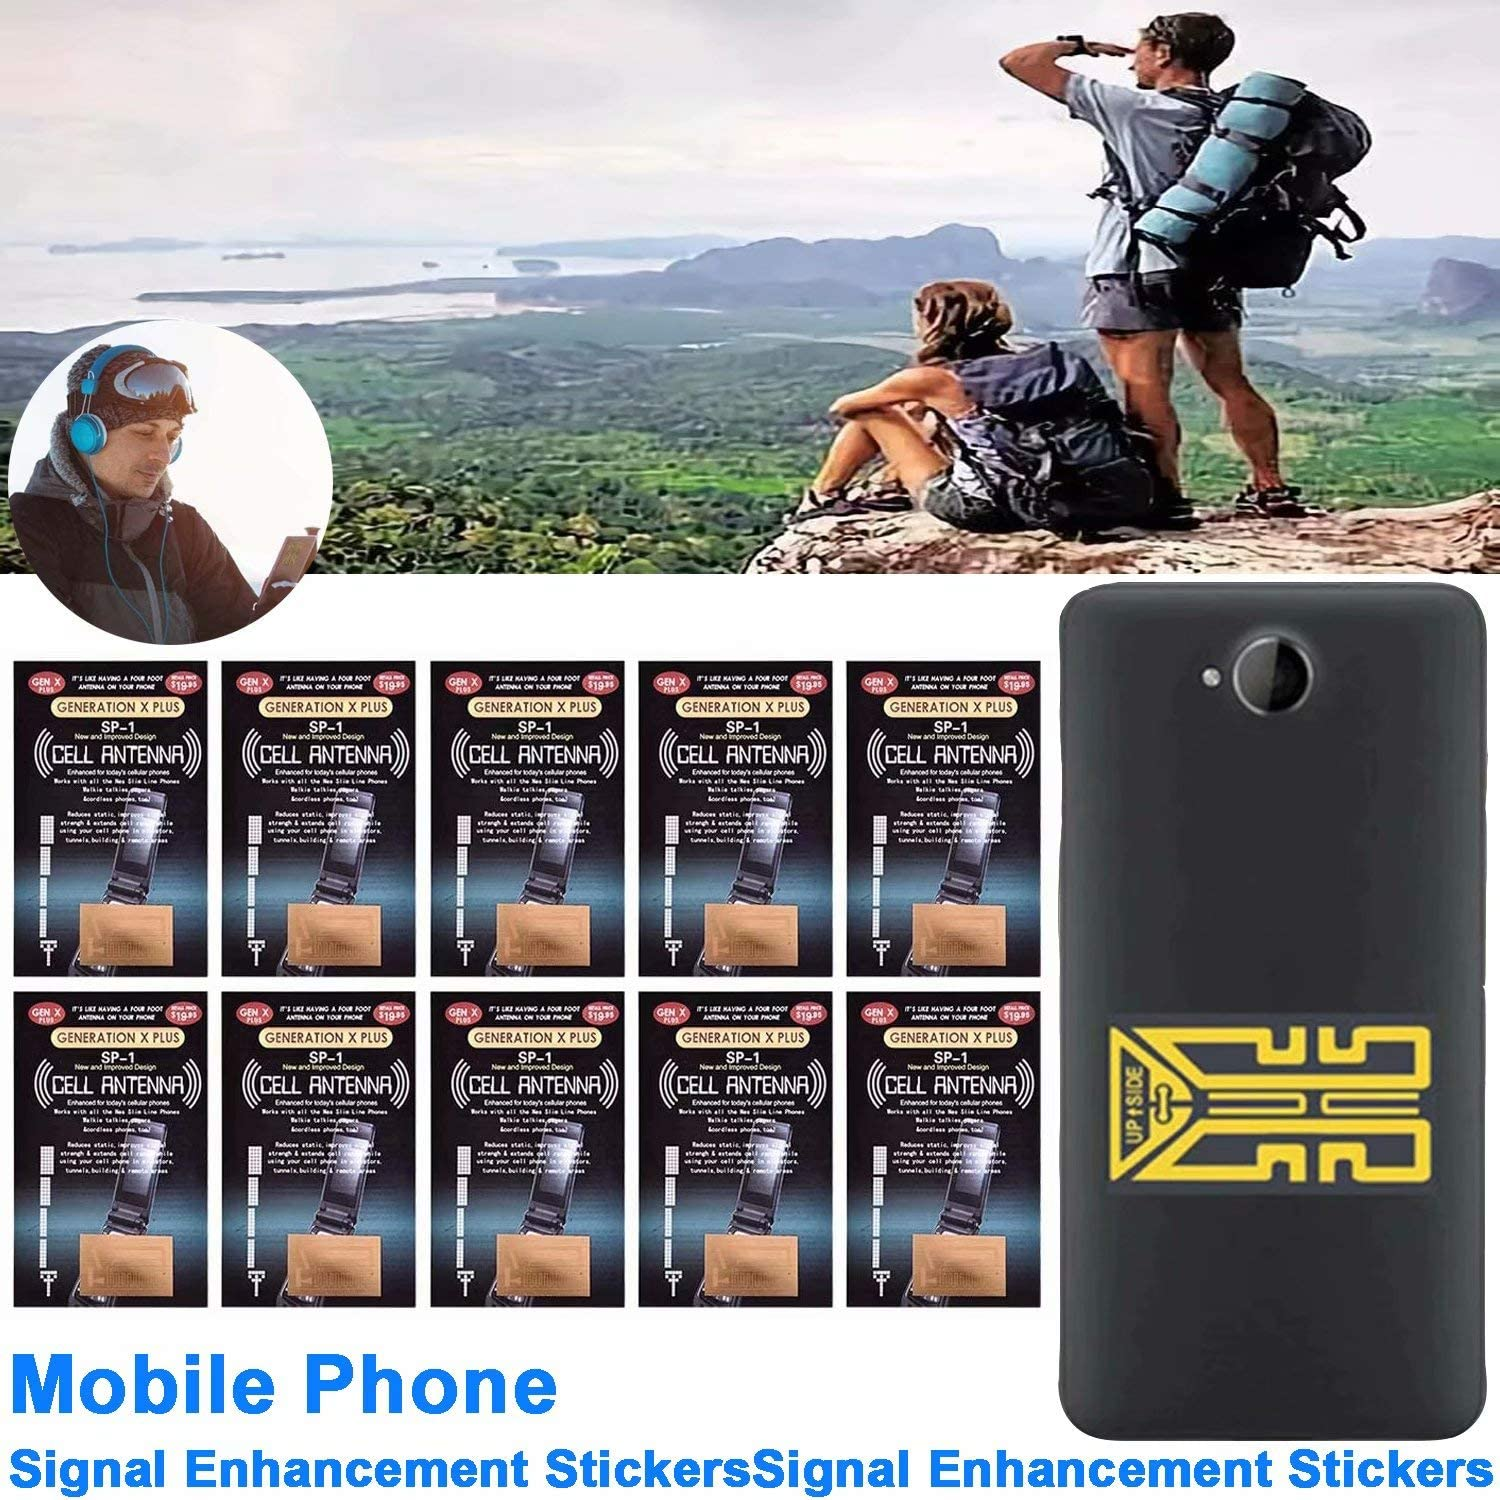 Cell Phone Signal Enhancement Stickers Mobile Phone Signal Enhancement Stickers, Antenna Signal Amplifier, Booster Your Signal in Travelling,Taking The Lift,Camping, Mountaineering